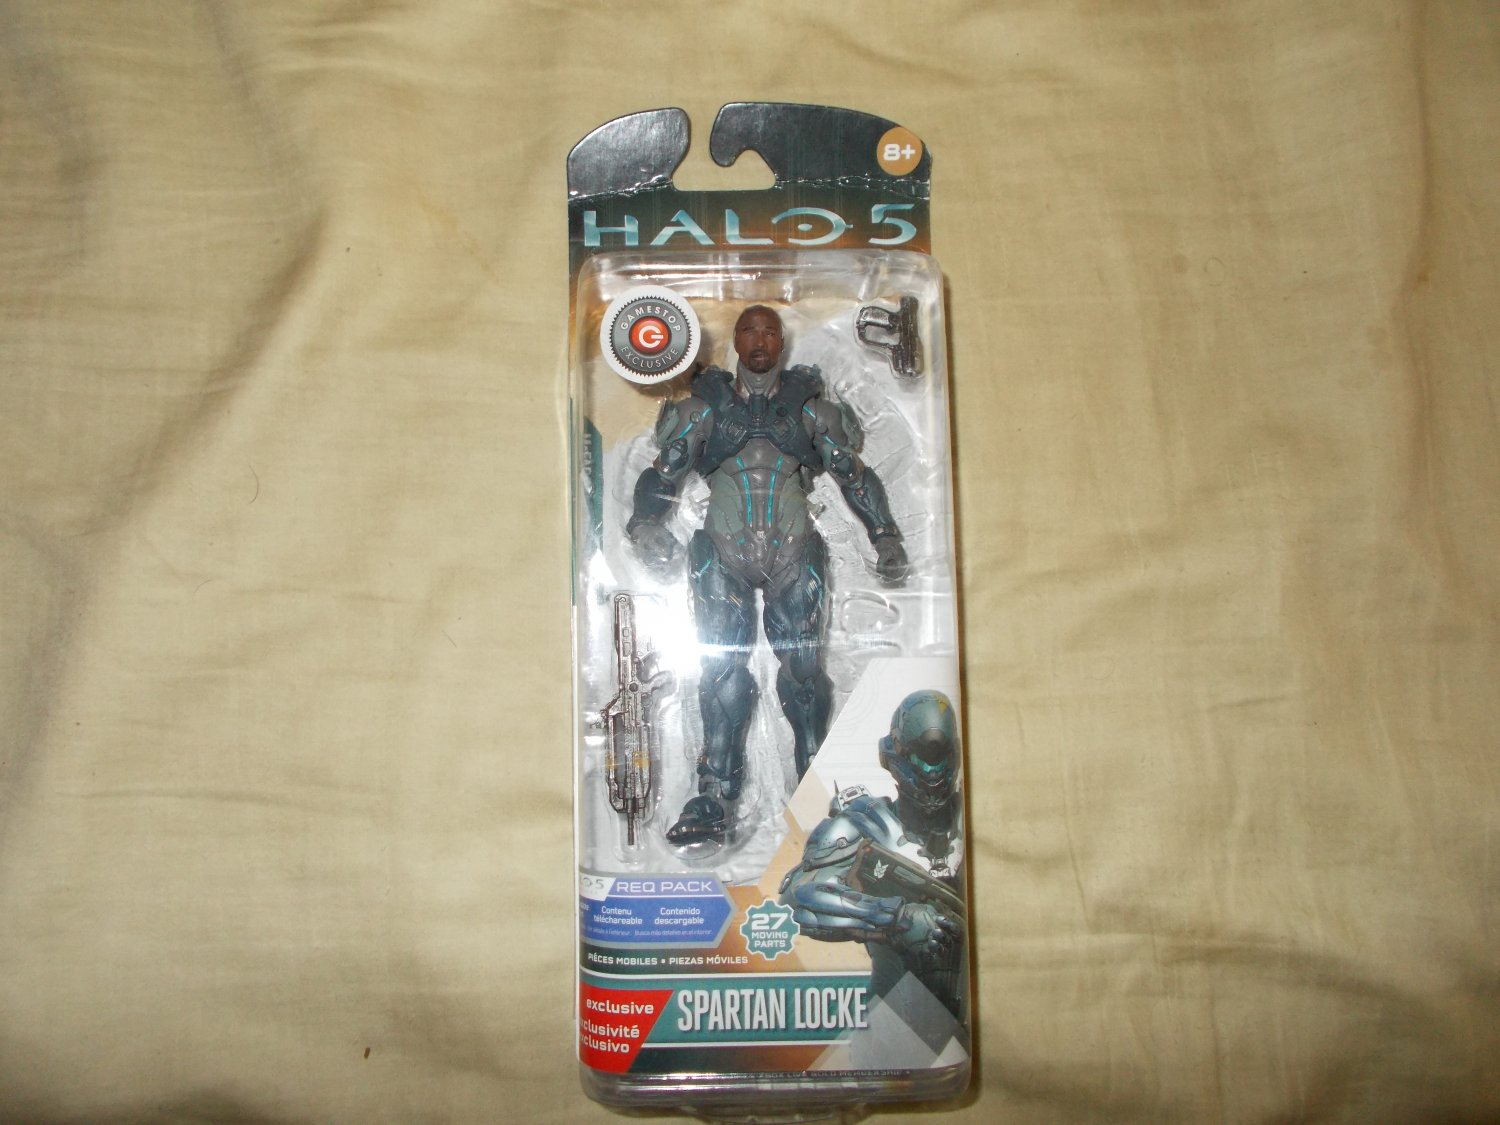 Halo 5  Guardians  Req Pack  Spartan Locke